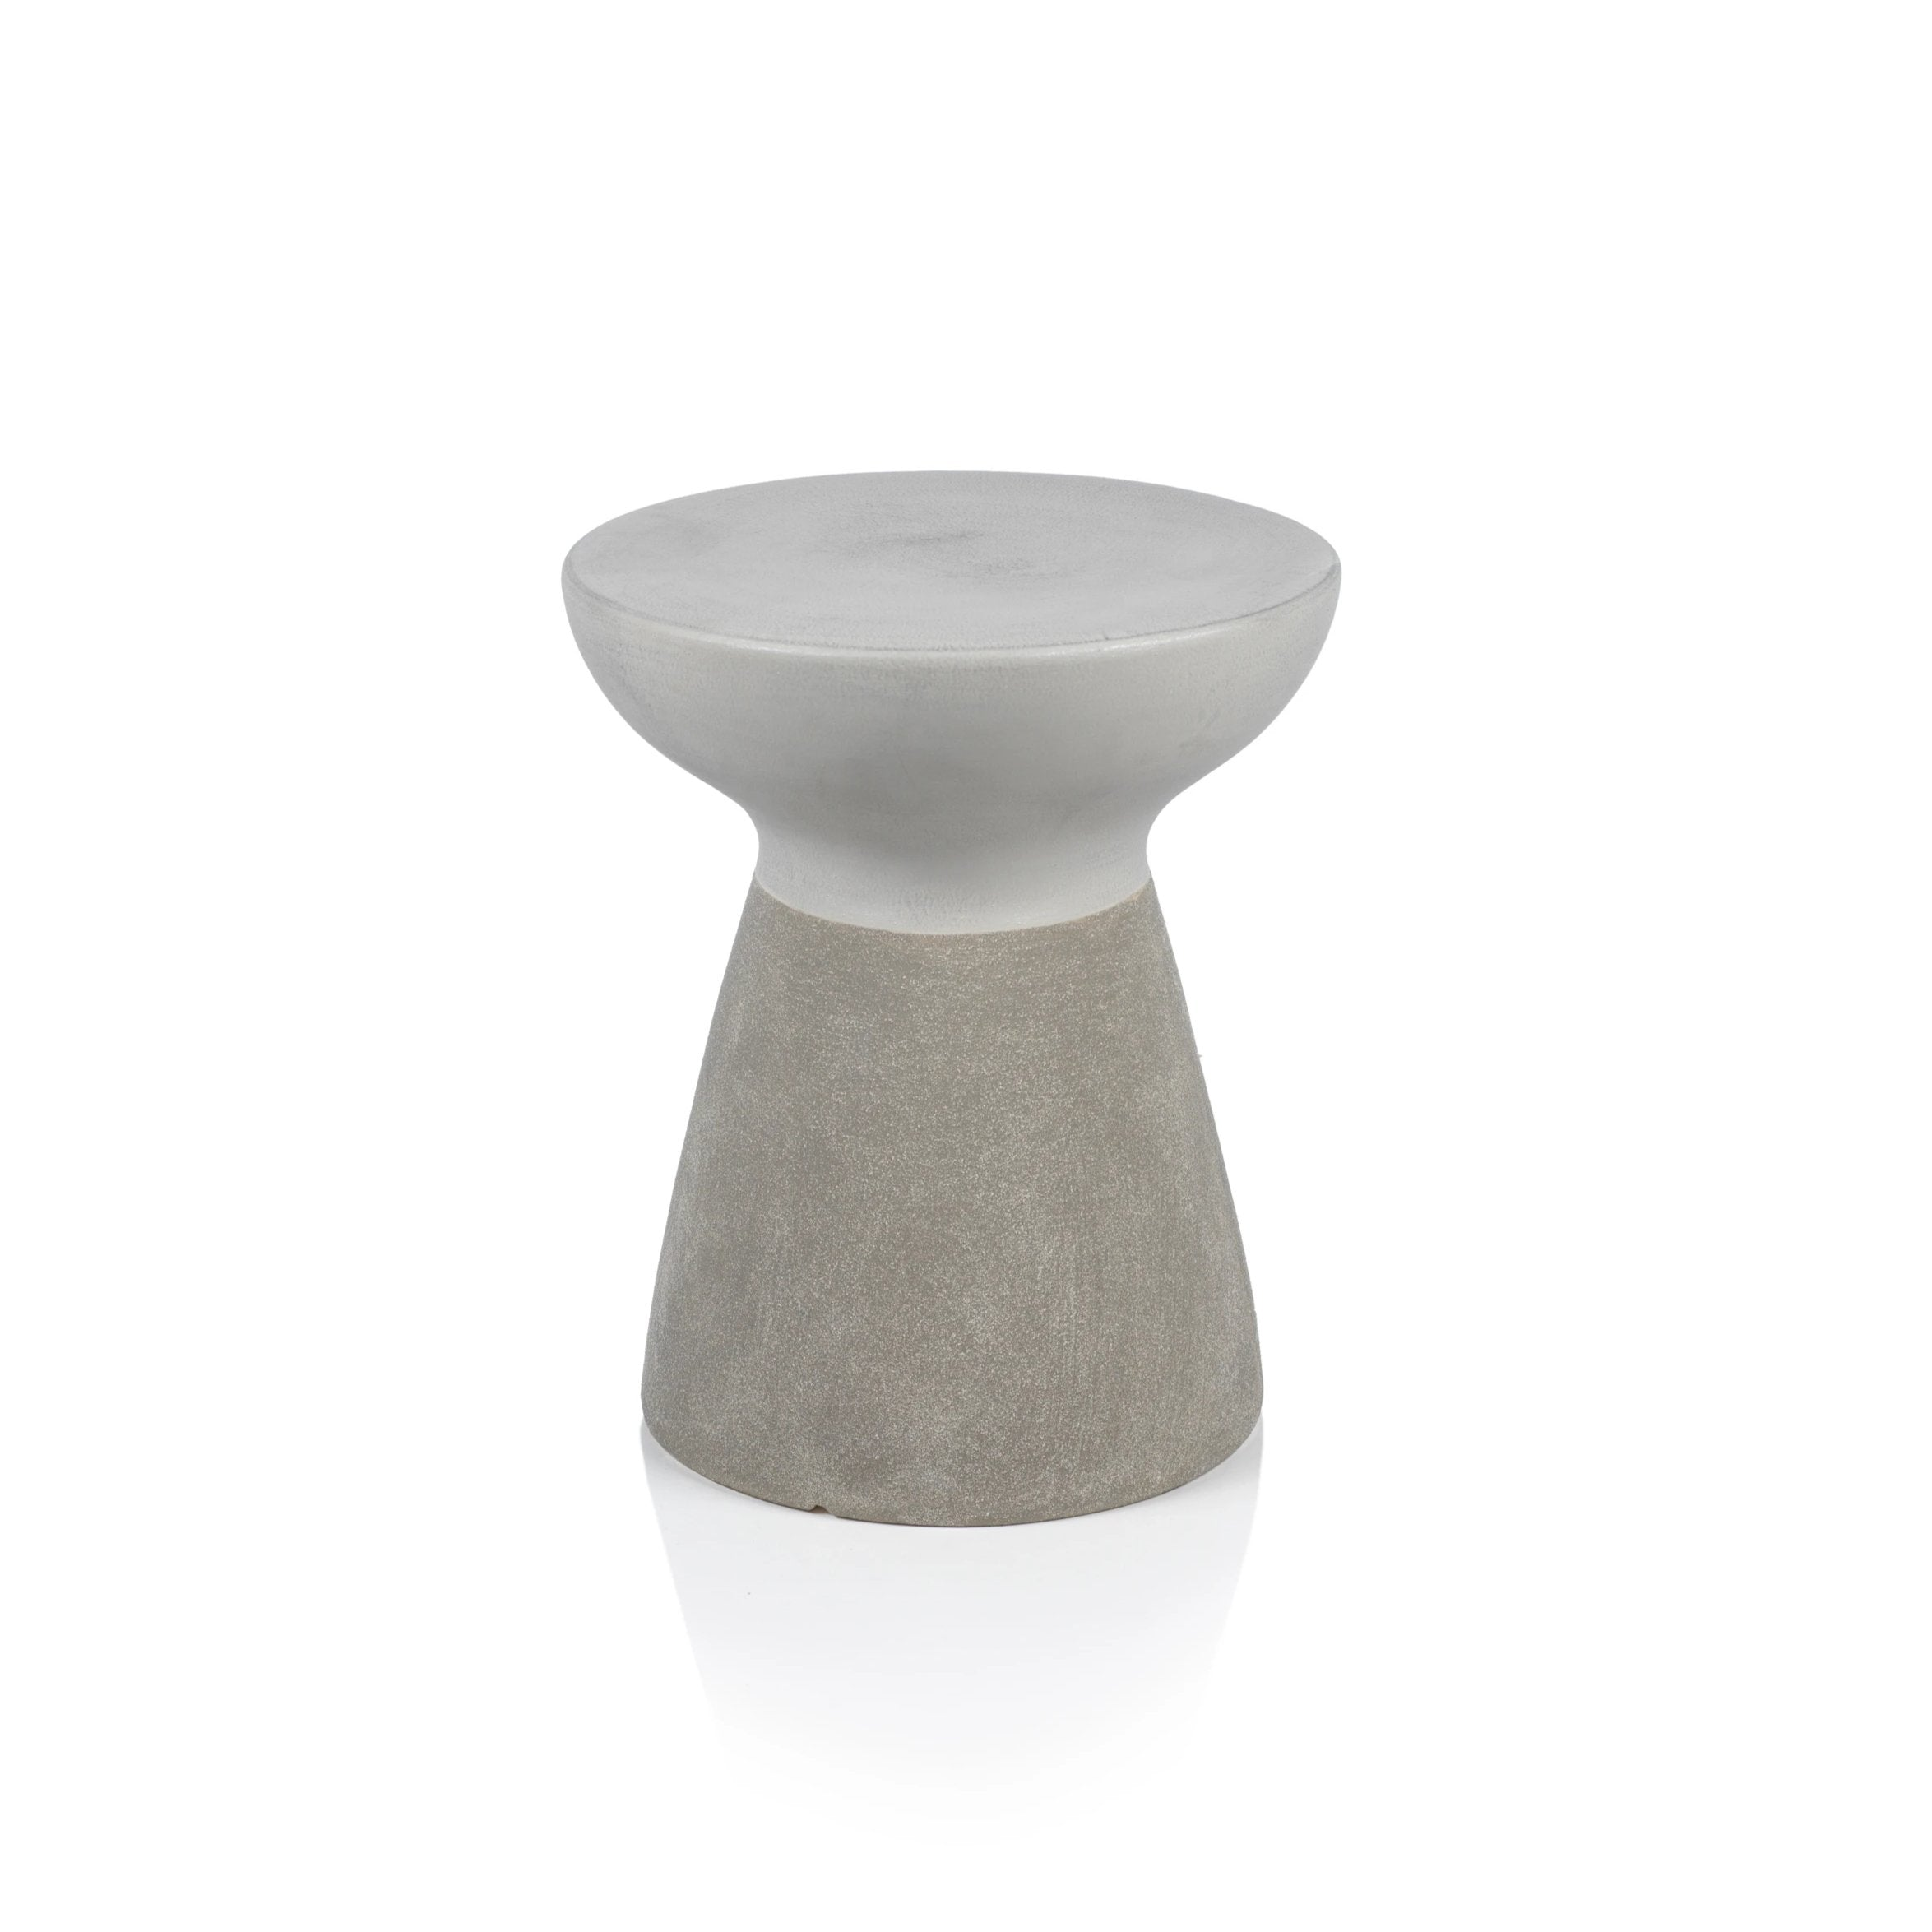 Pablo Earthenware Two Tone Stool - CARLYLE AVENUE